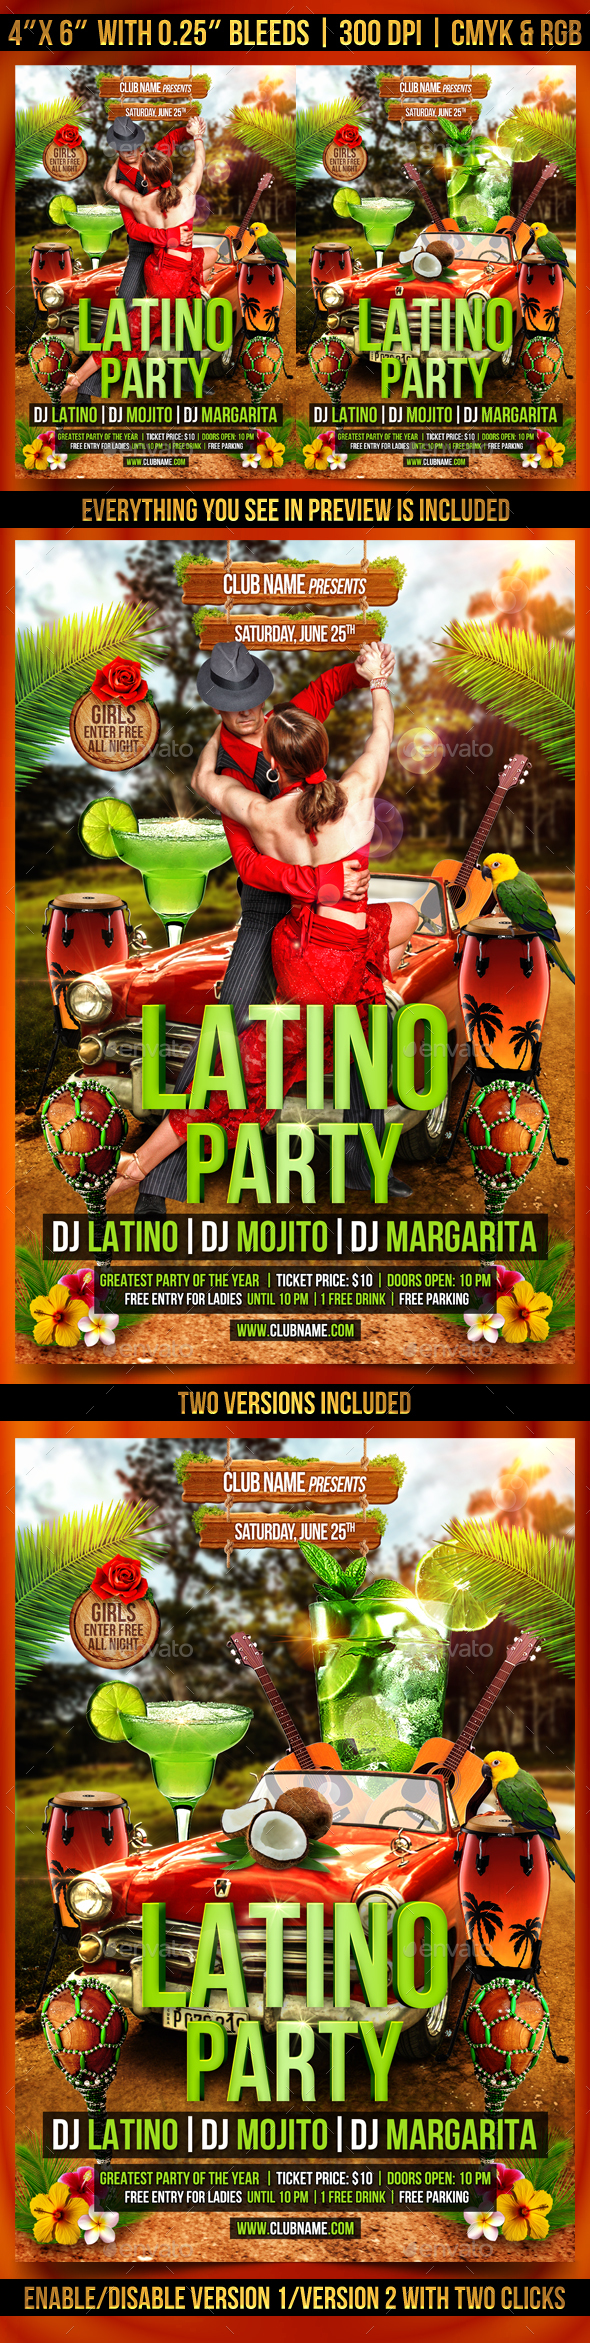 Latino Party Flyer Template - Clubs & Parties Events